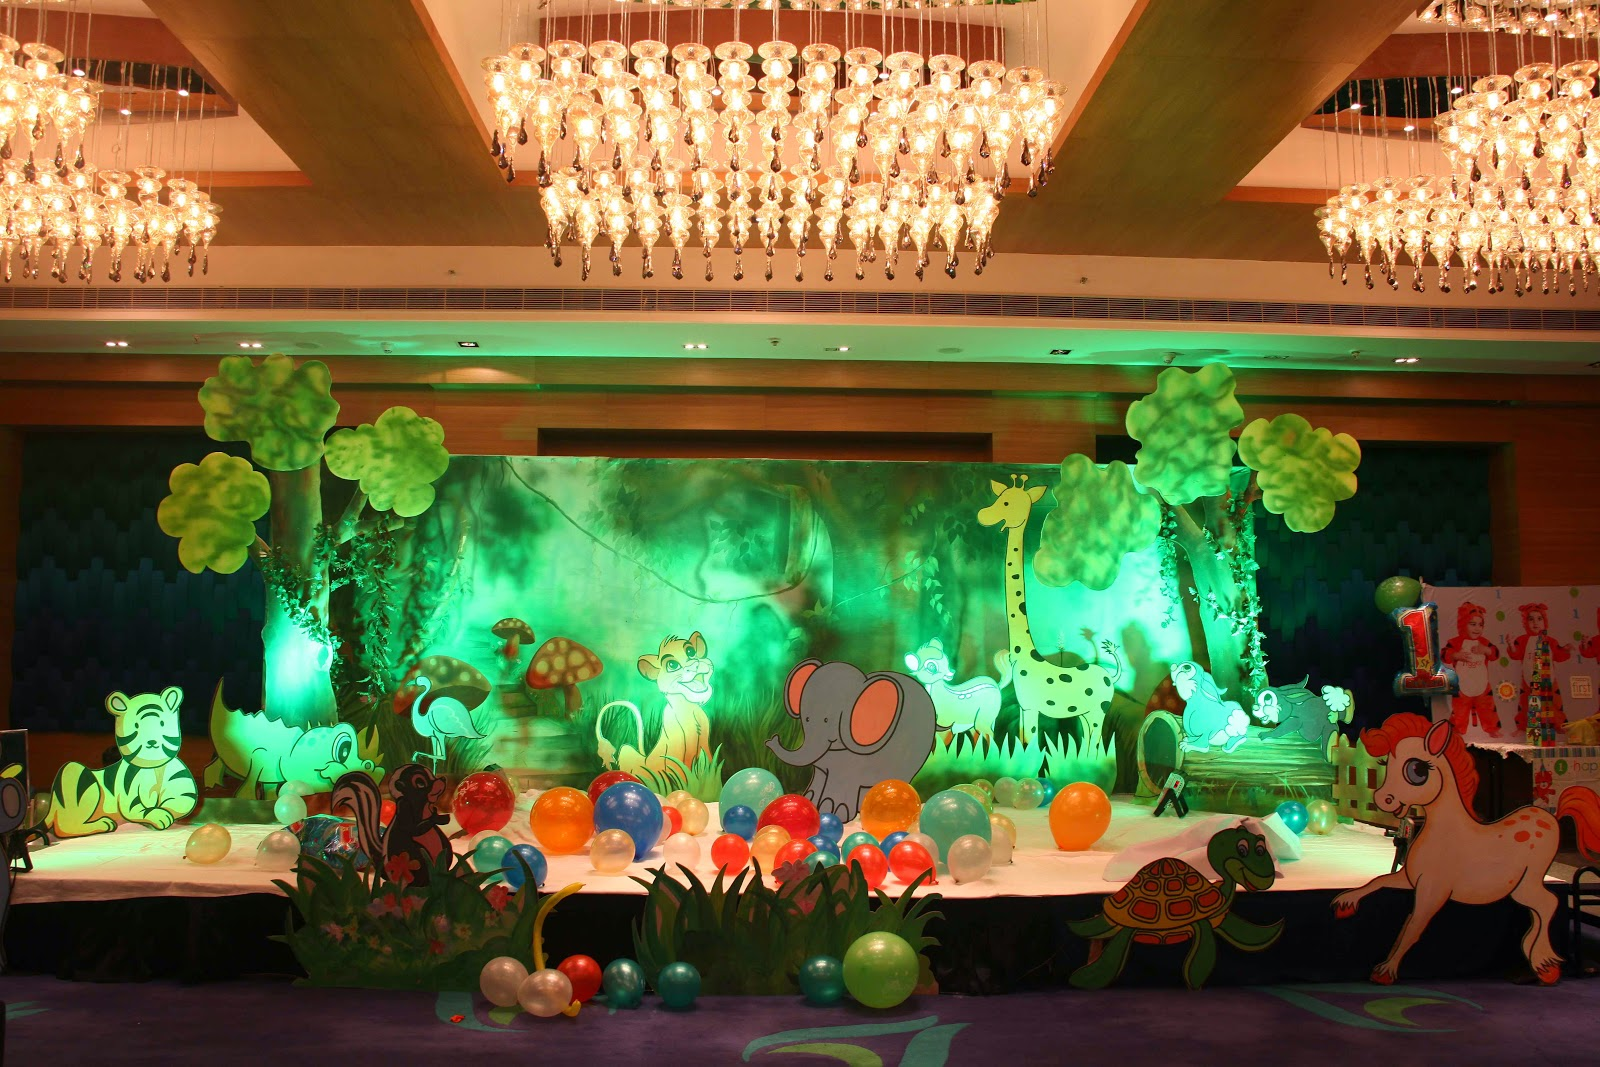 Birthday party decorations in hyderabad march 2015 for Balloon decoration for birthday party in hyderabad